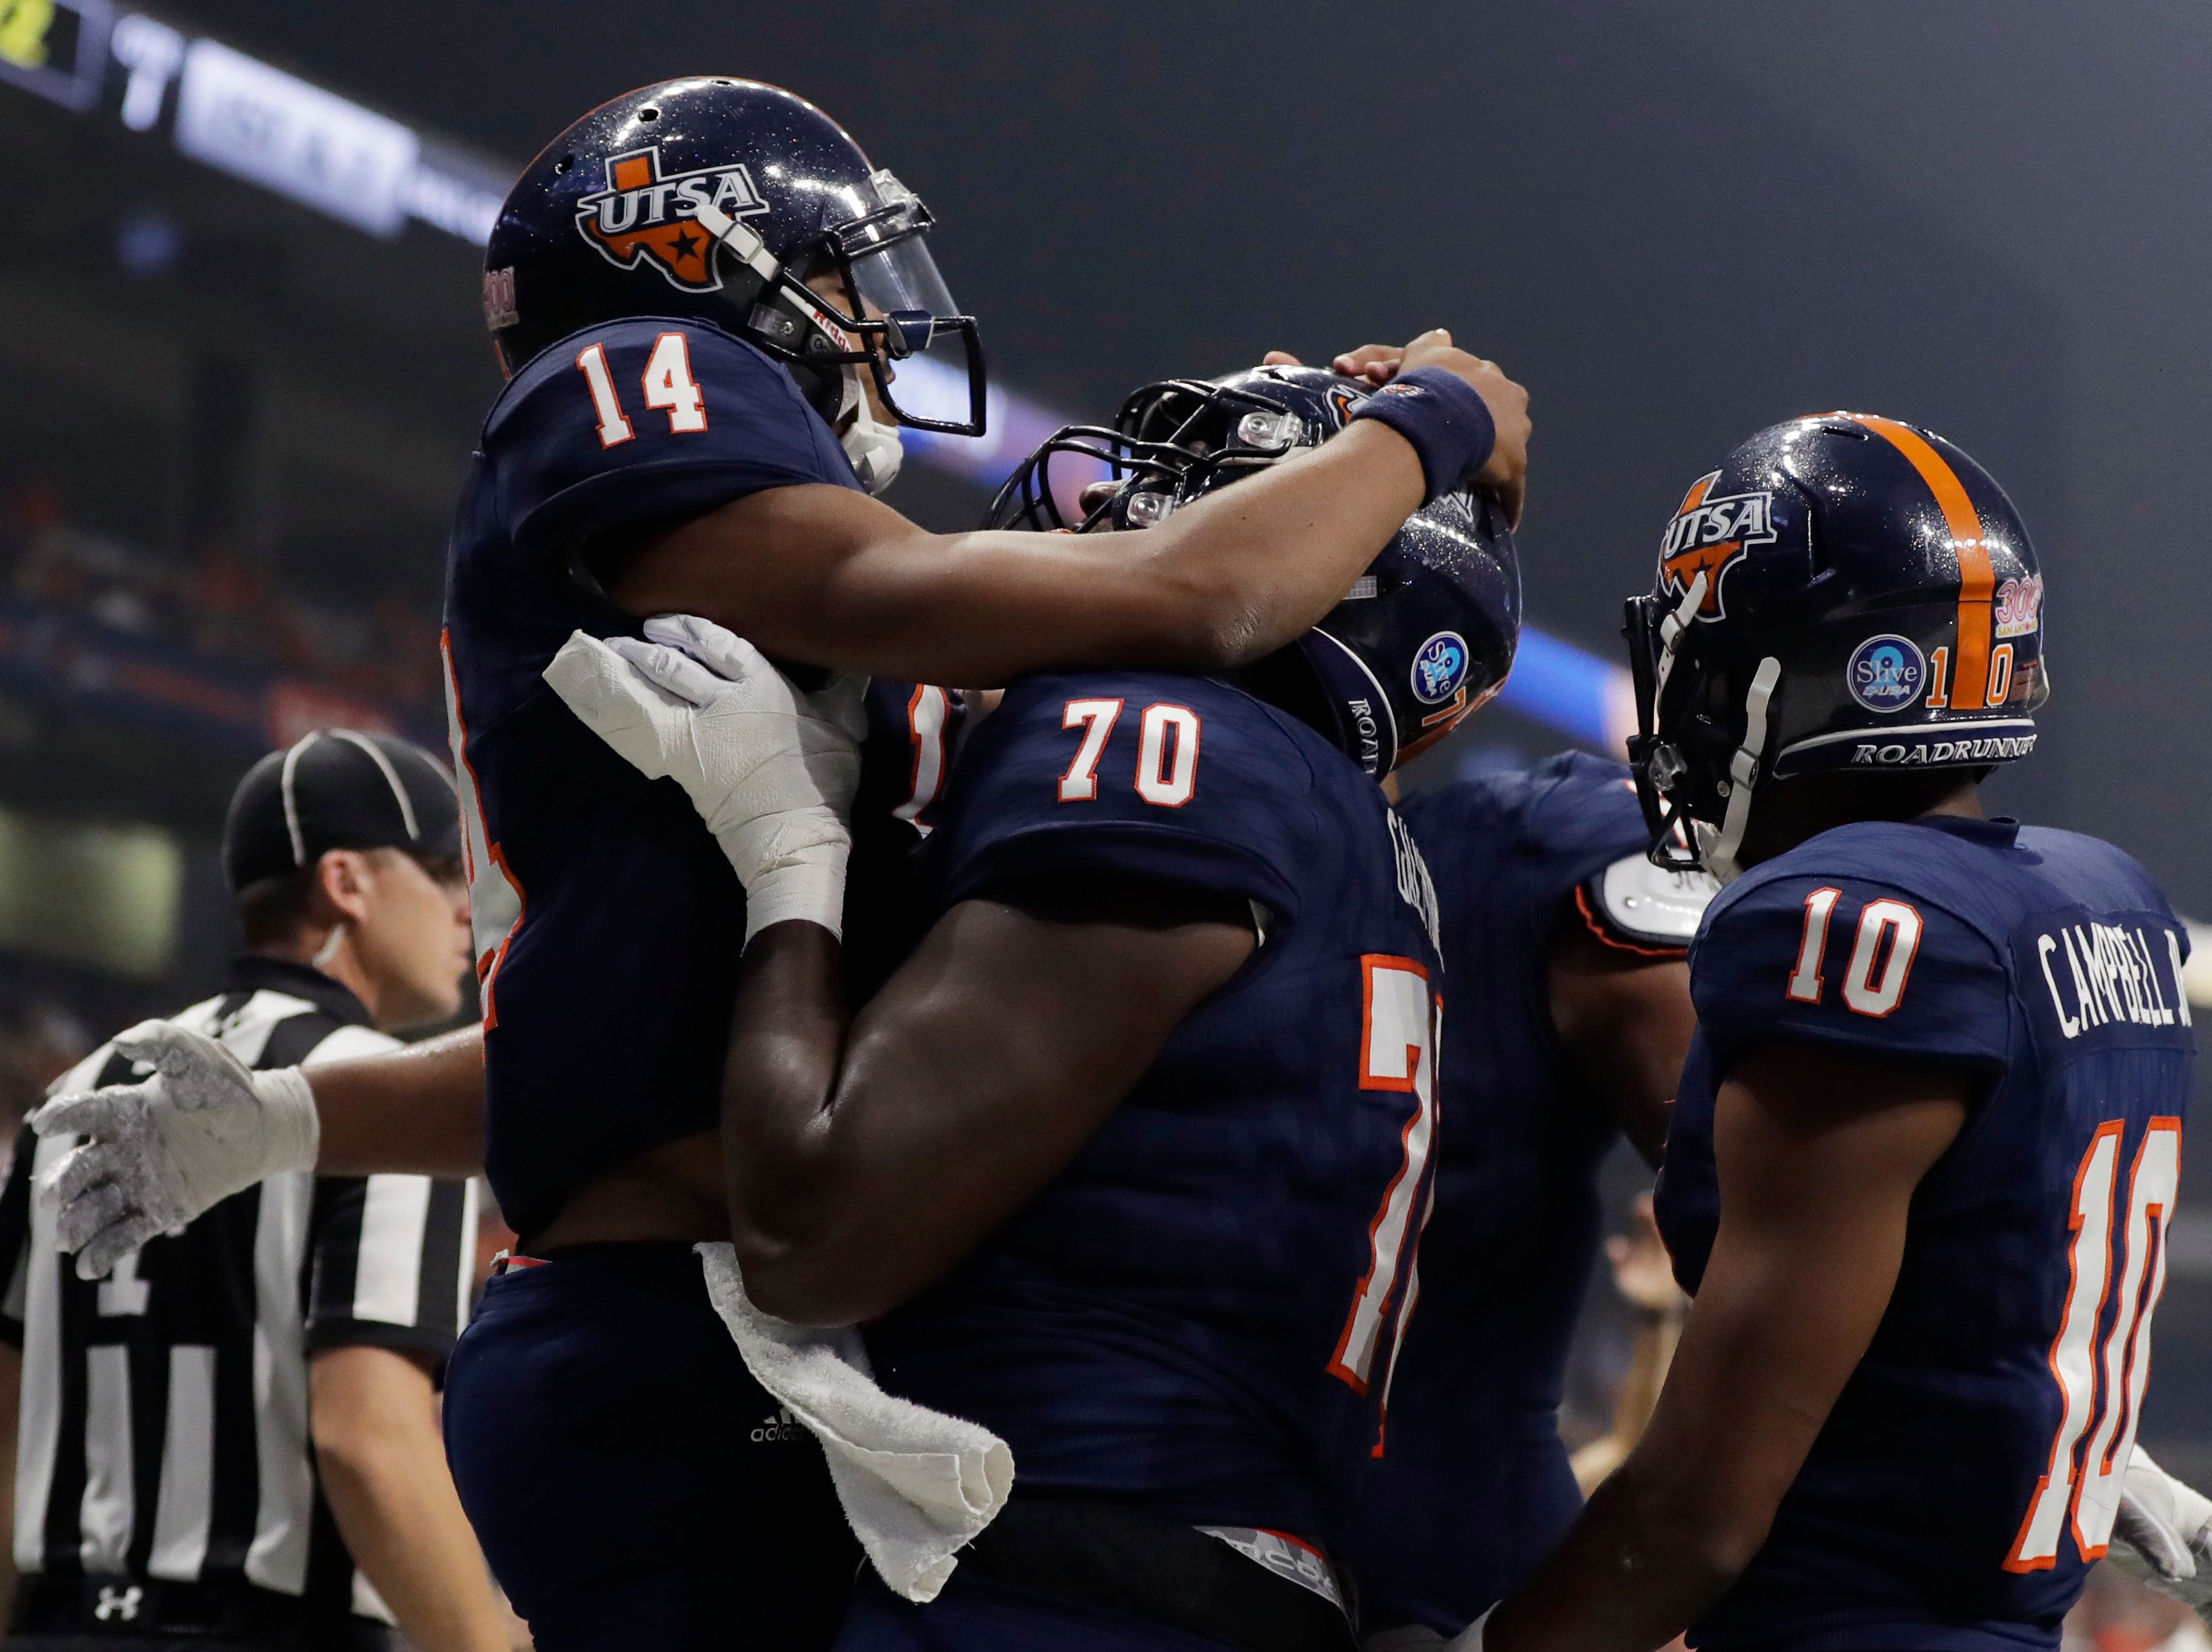 UTSA quarterback Cordale Grundy (14) celebrates his touchdown with teammates Jalyn Galmore (70) and Greg Campbell Jr. (10) during the first half of an NCAA college football game against UTEP, Saturday, Sept. 29, 2018, in San Antonio. (AP Photo/Eric Gay)